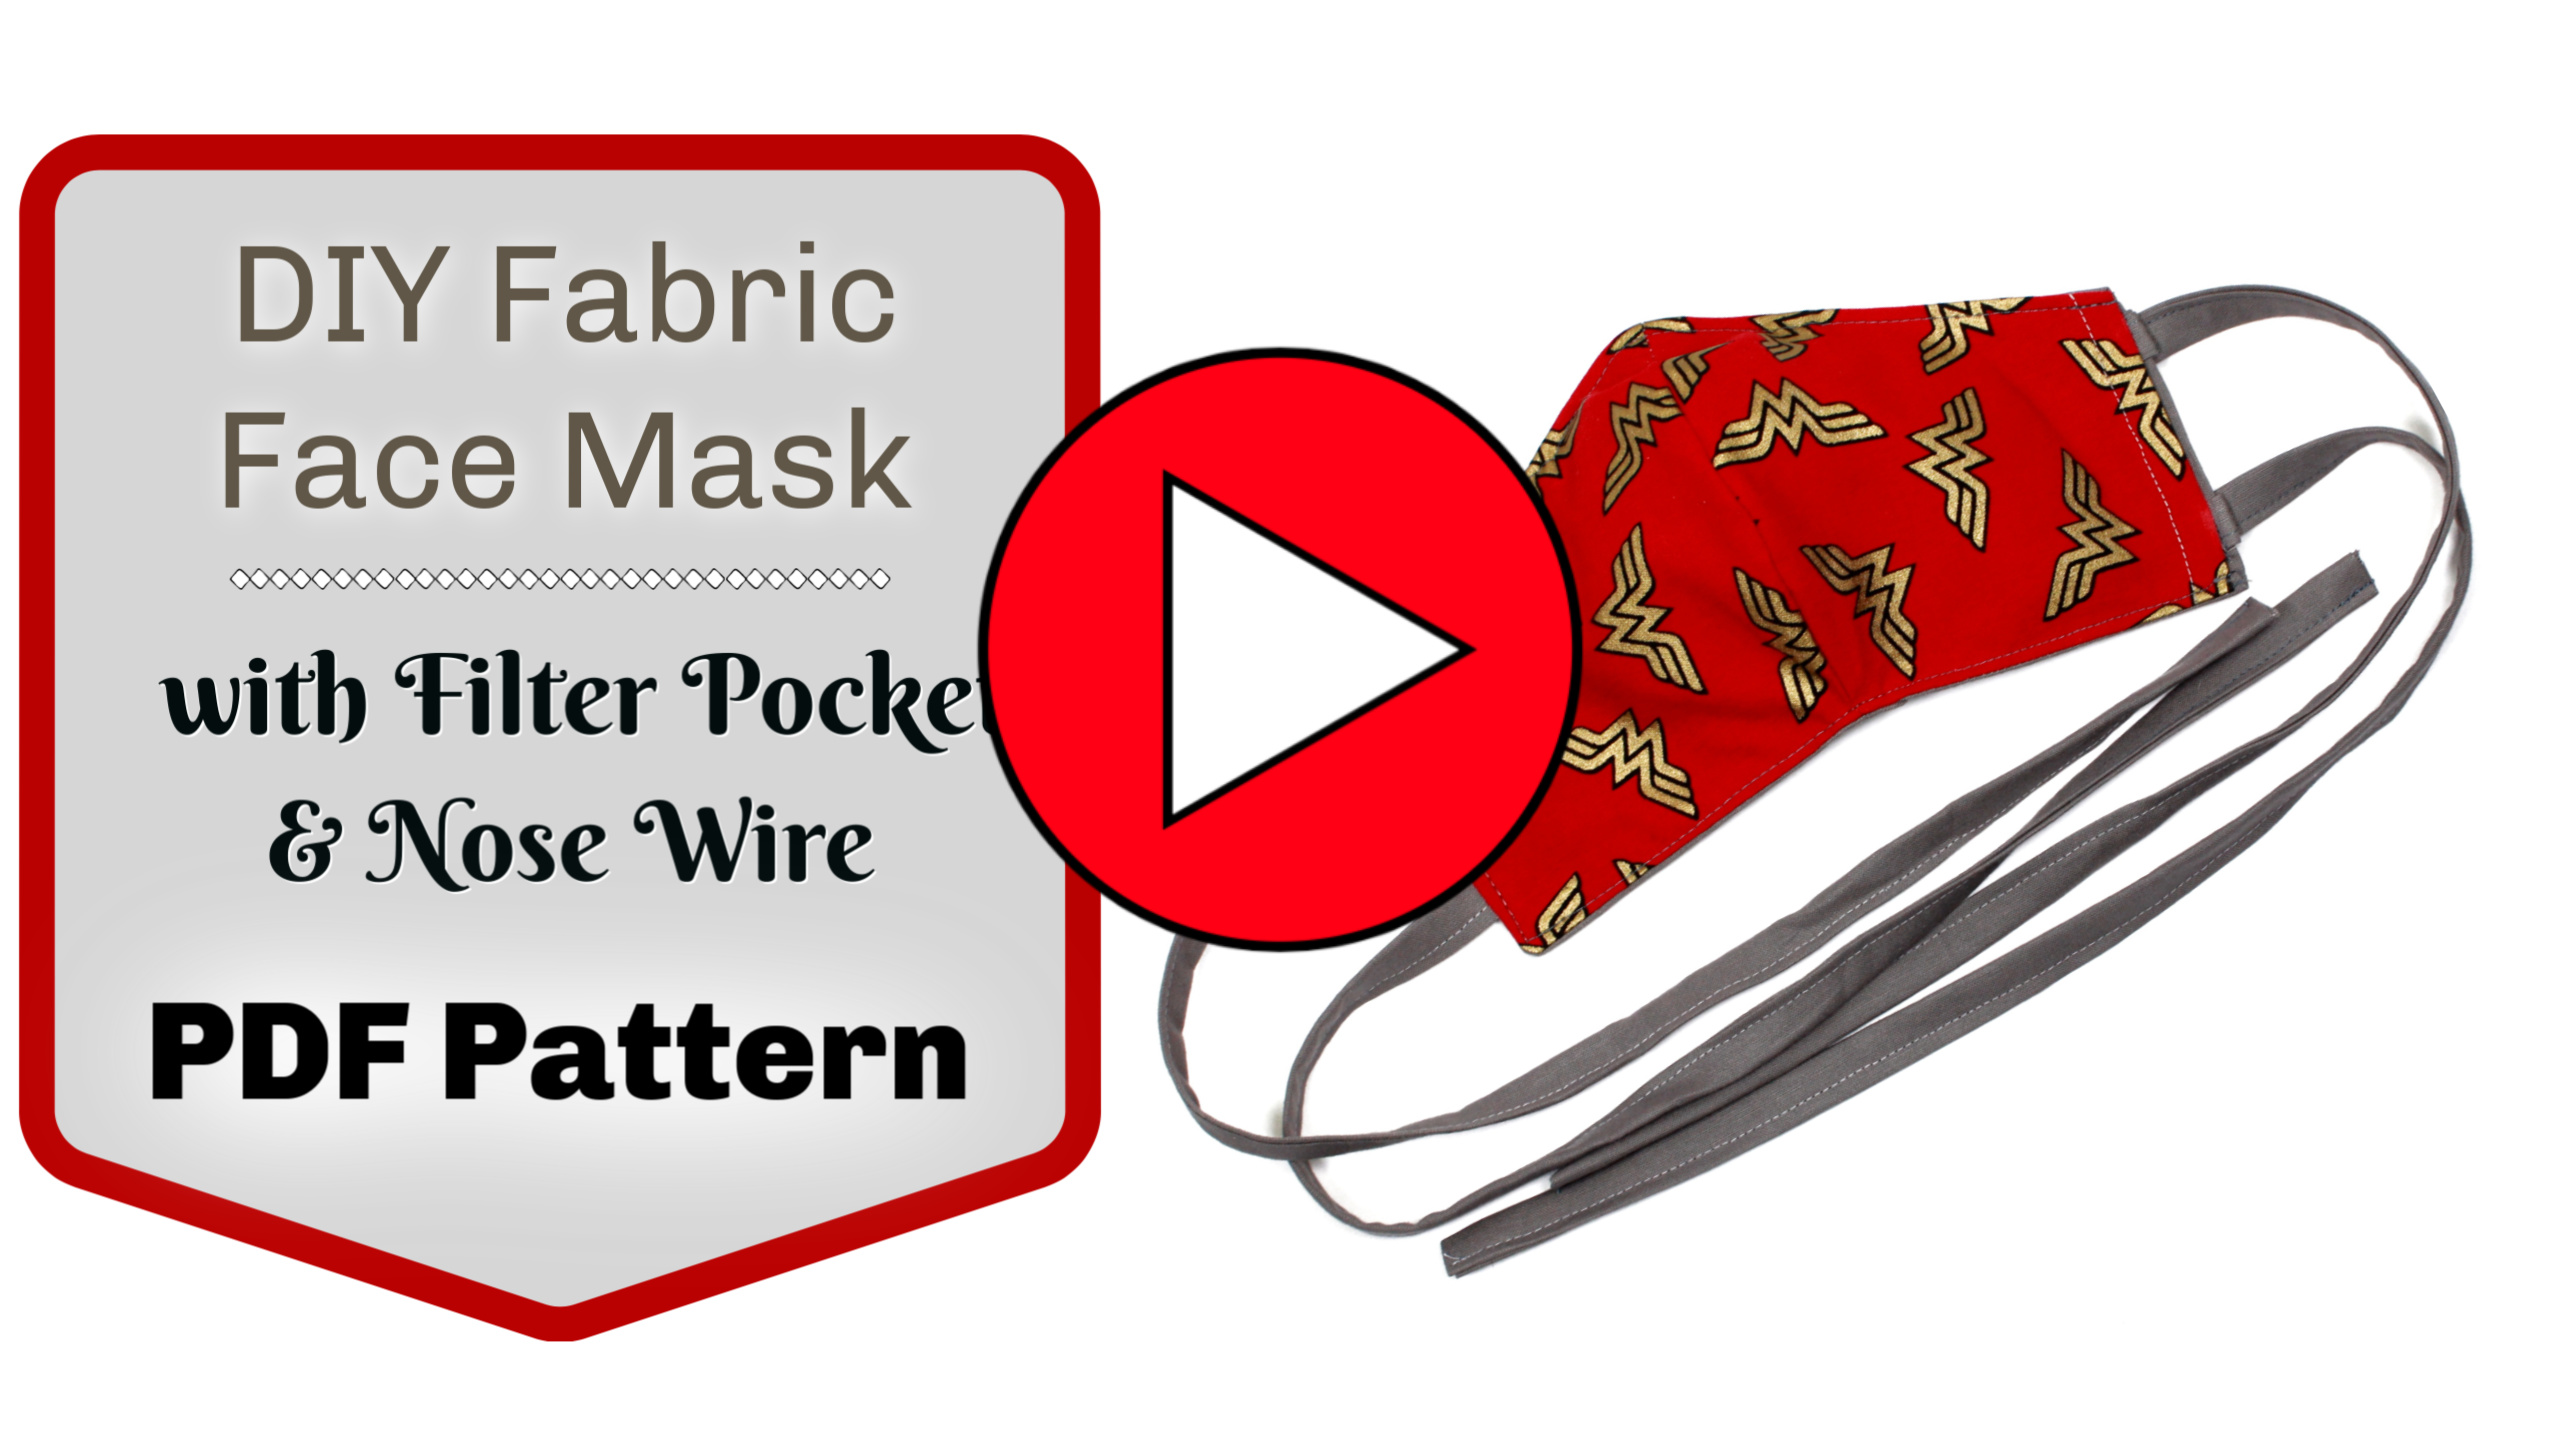 DIY Handmade Face Mask Pattern with filter pocket and flexible nose wire